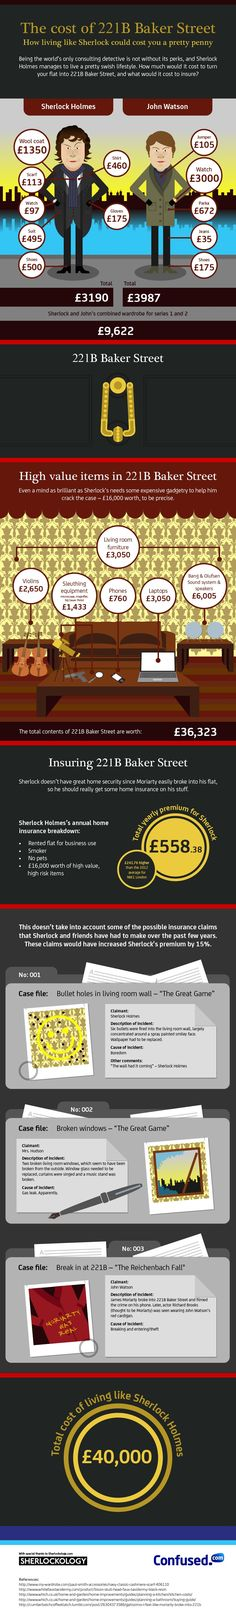 Ever wondered what it costs to live in 221B?